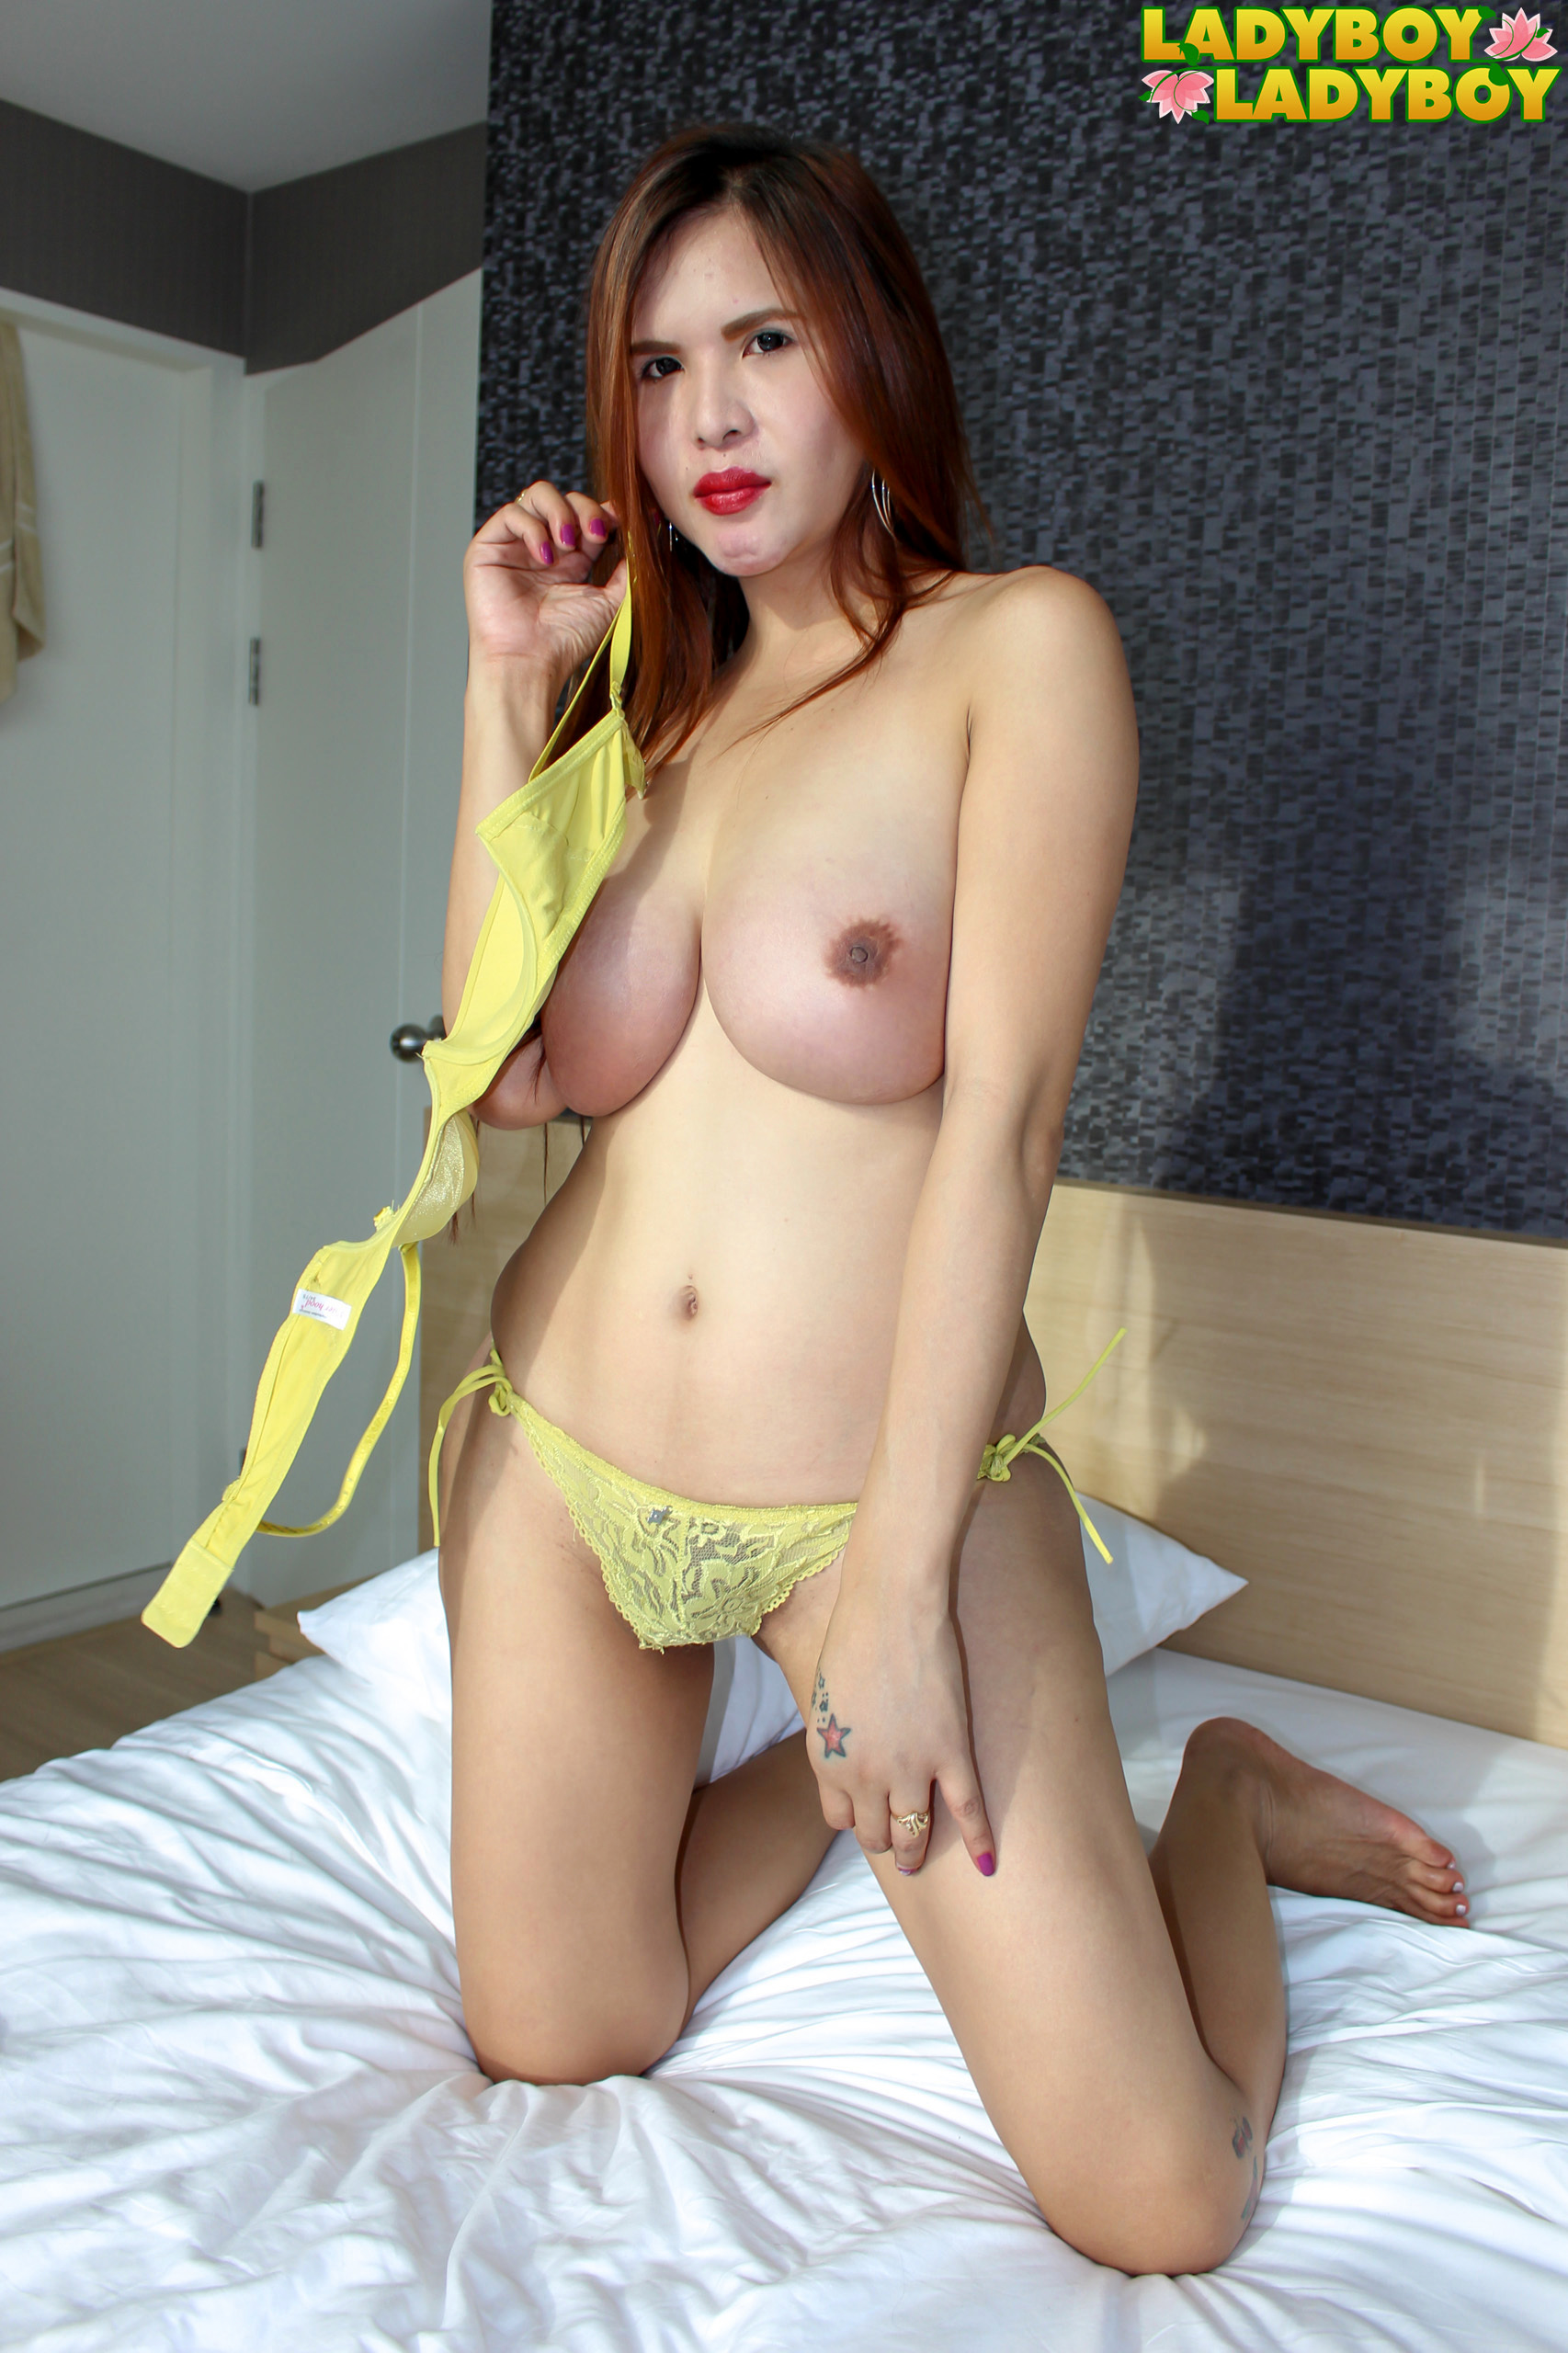 Shainne, Incredible In Yellow Lingerie!